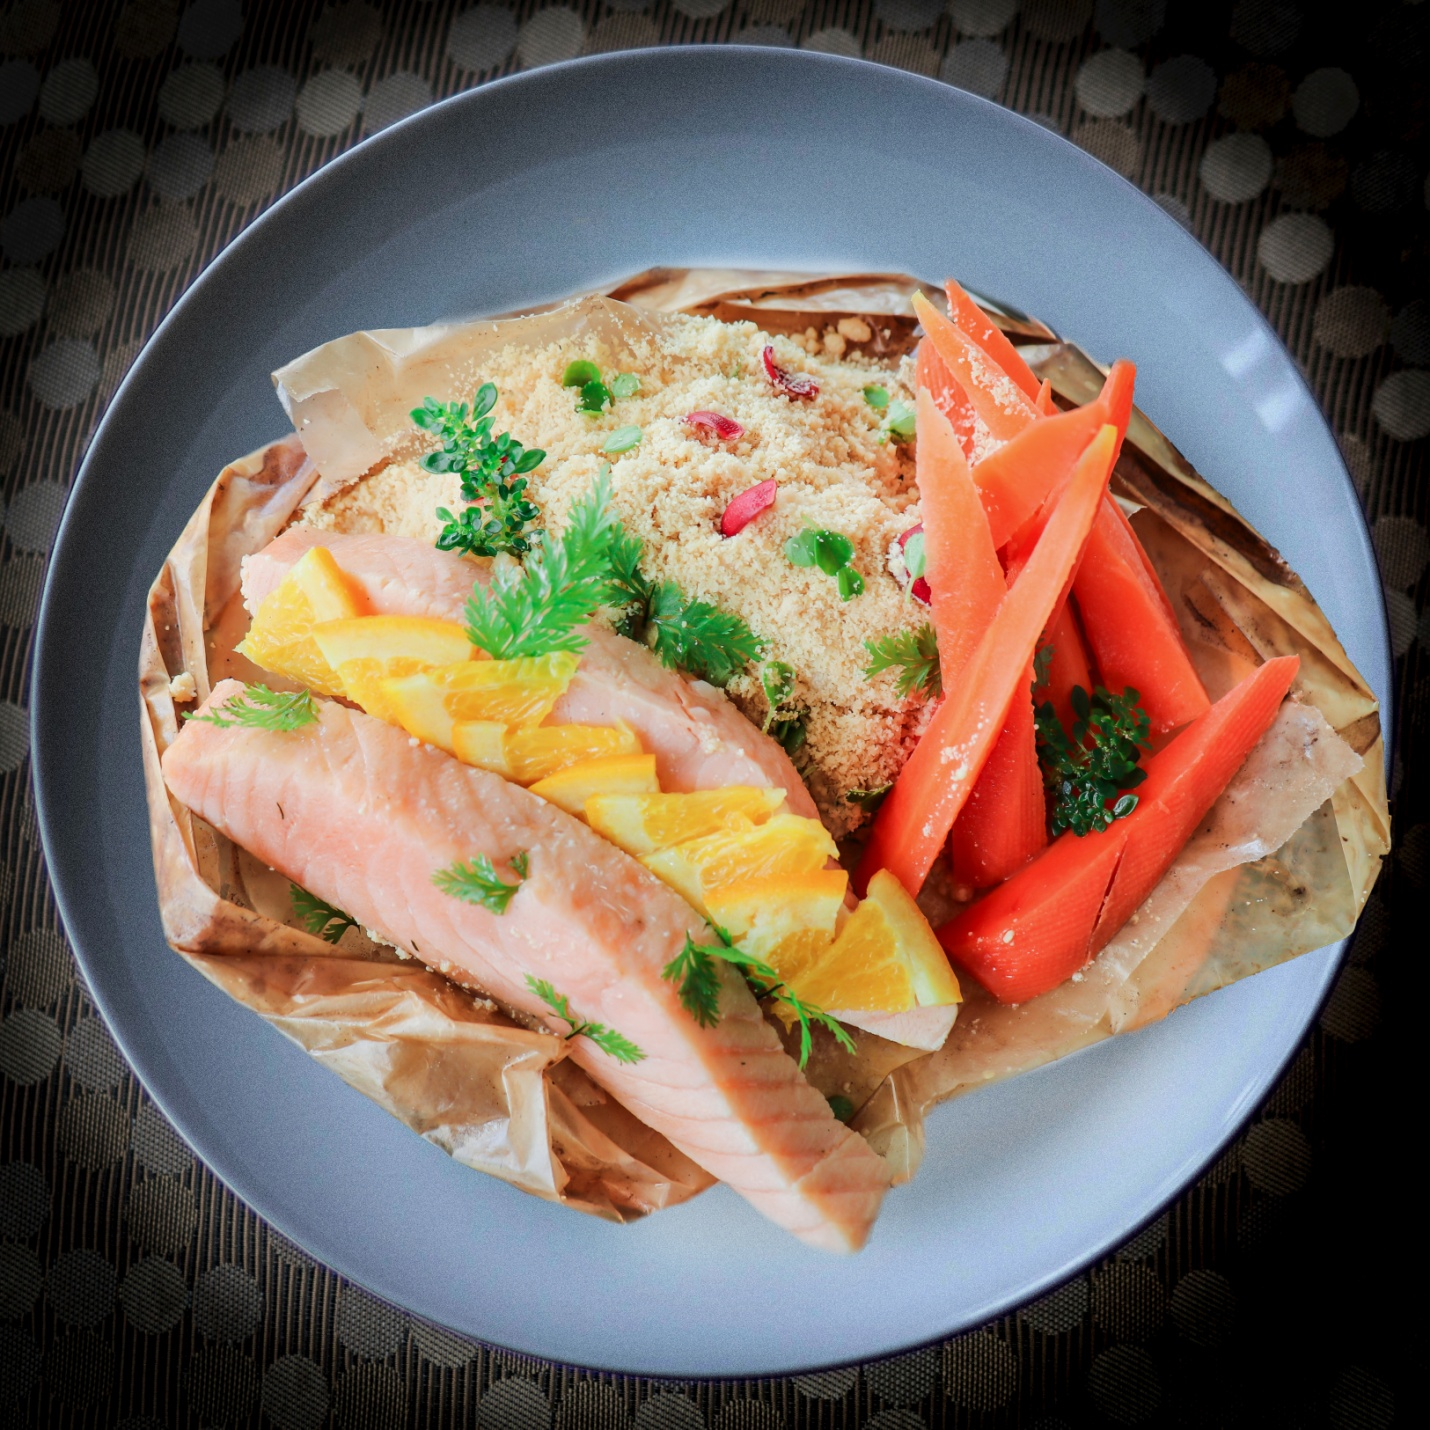 D:\ROBBY PERSONAL FILES 2013\RMA FILES\OCEAN PARK\FEBRUARY 2021\FINAL PR PHOTOS\One Night in Tuscany - Salmon Papillote, Moroccan Spiced Couscous, Glazed Carrots, Lime Vinaigrette.jpg